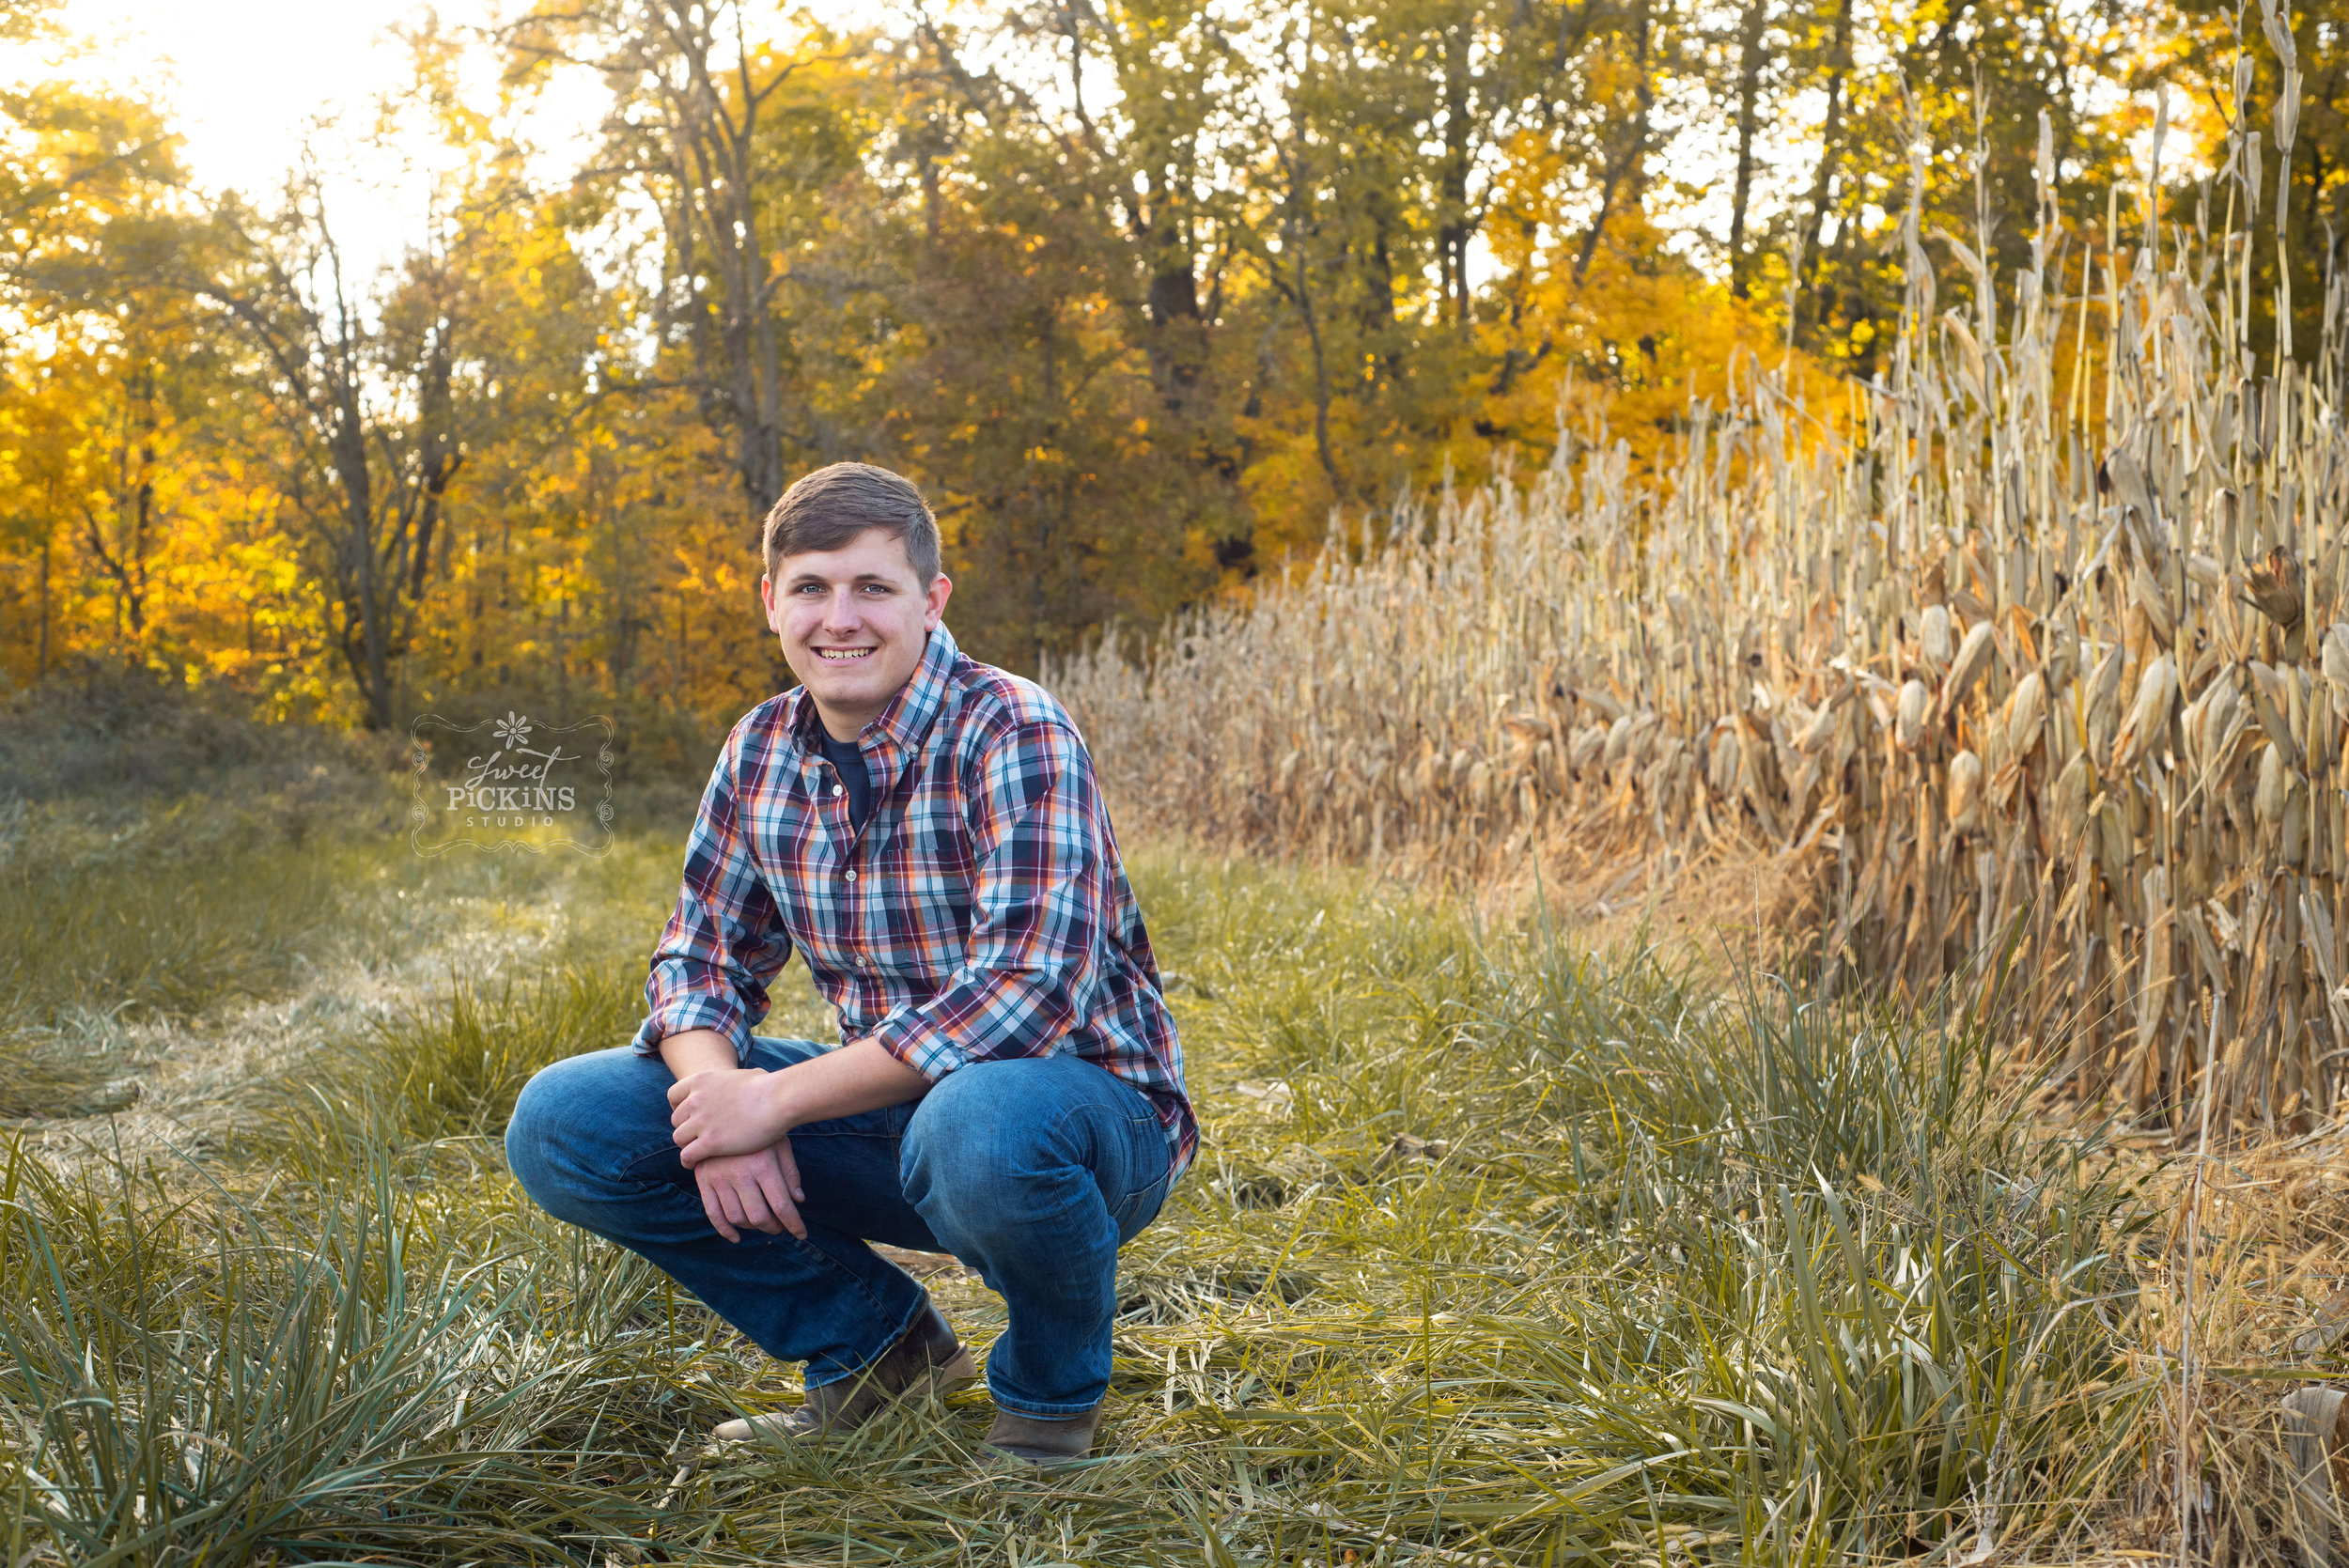 Bunker Hill, IN Senior Portrait Photography | Maconaquah Class of 2019 | Outdoor Fall Senior Farm Boy with Field Corn at Harvest | Flannel and Jeans